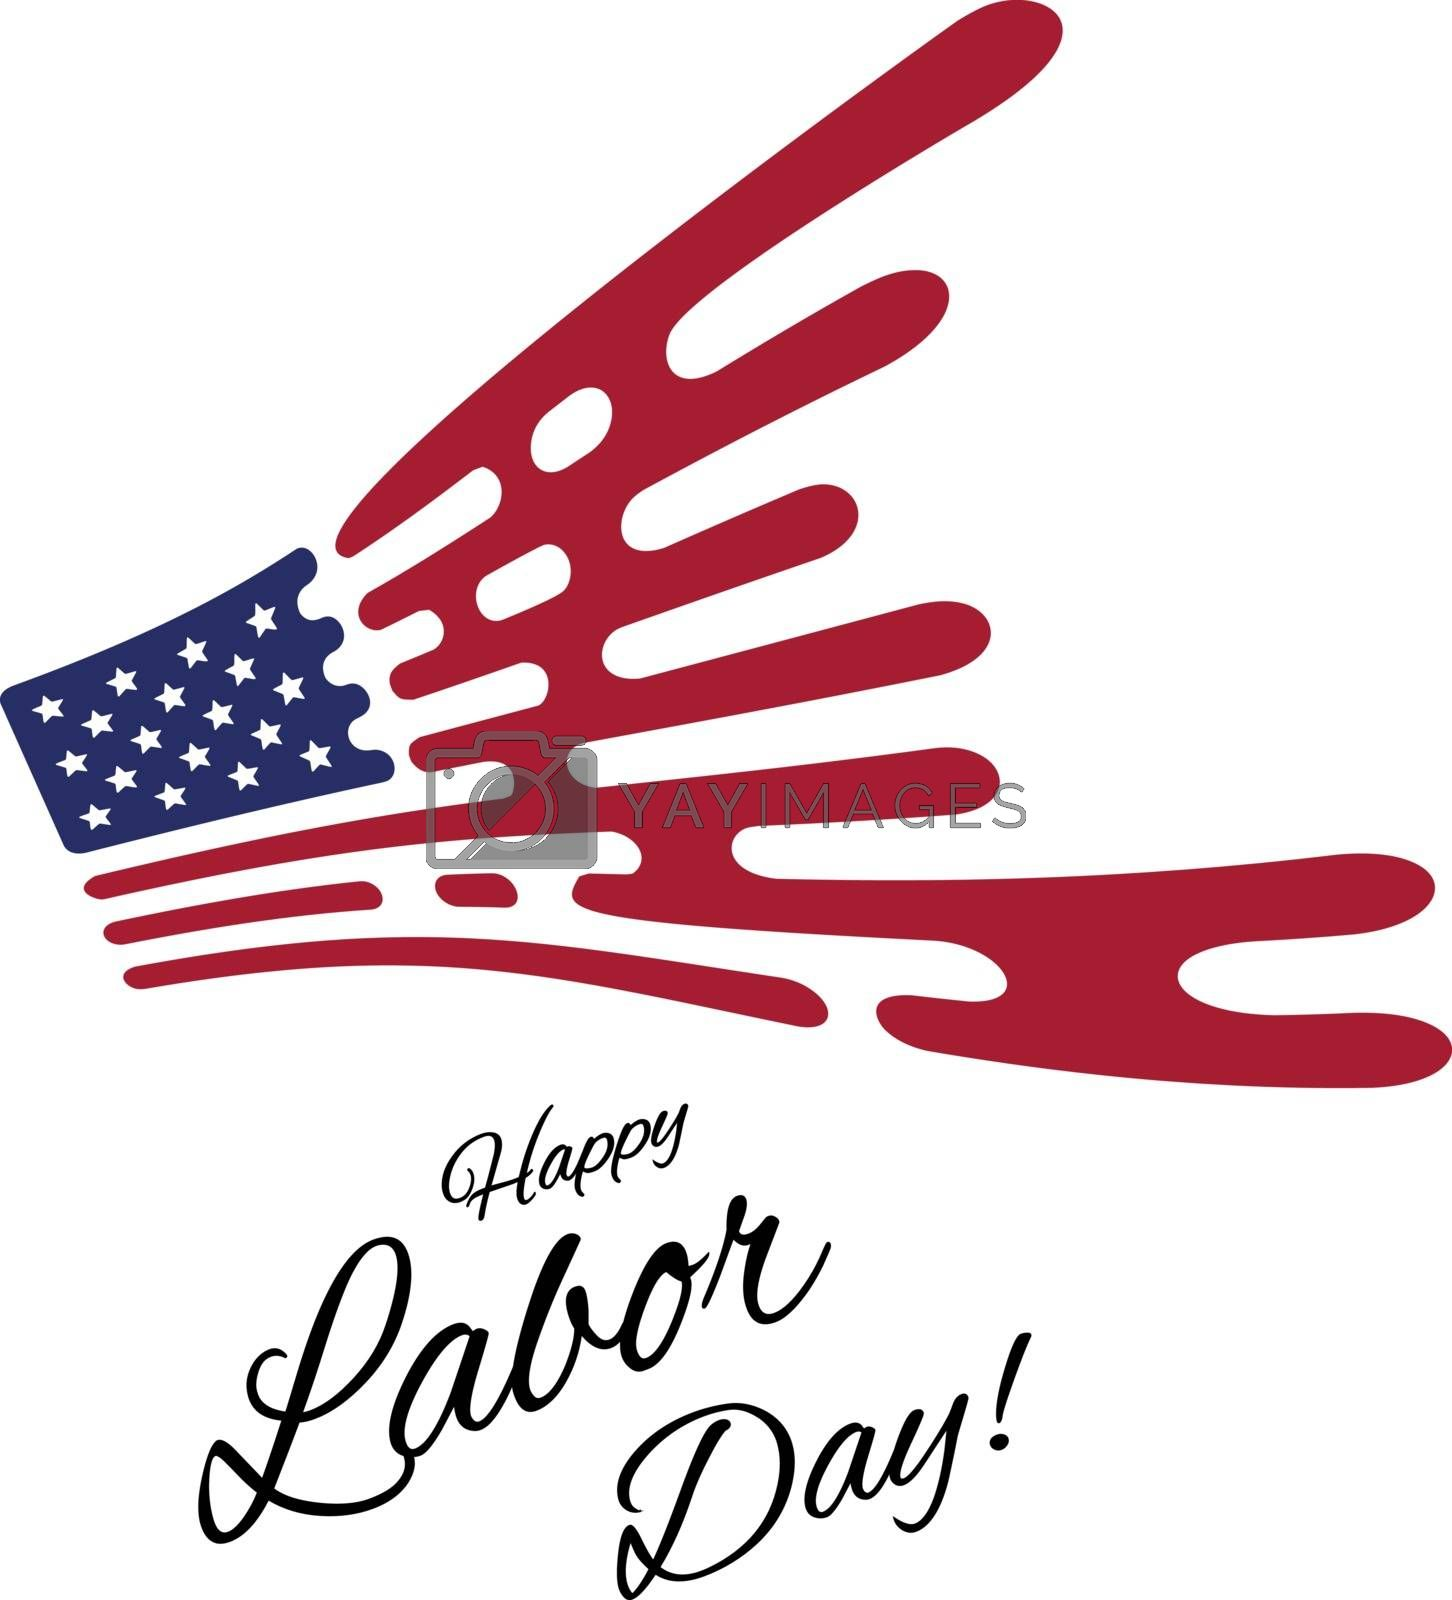 Happy labor day by sermax55